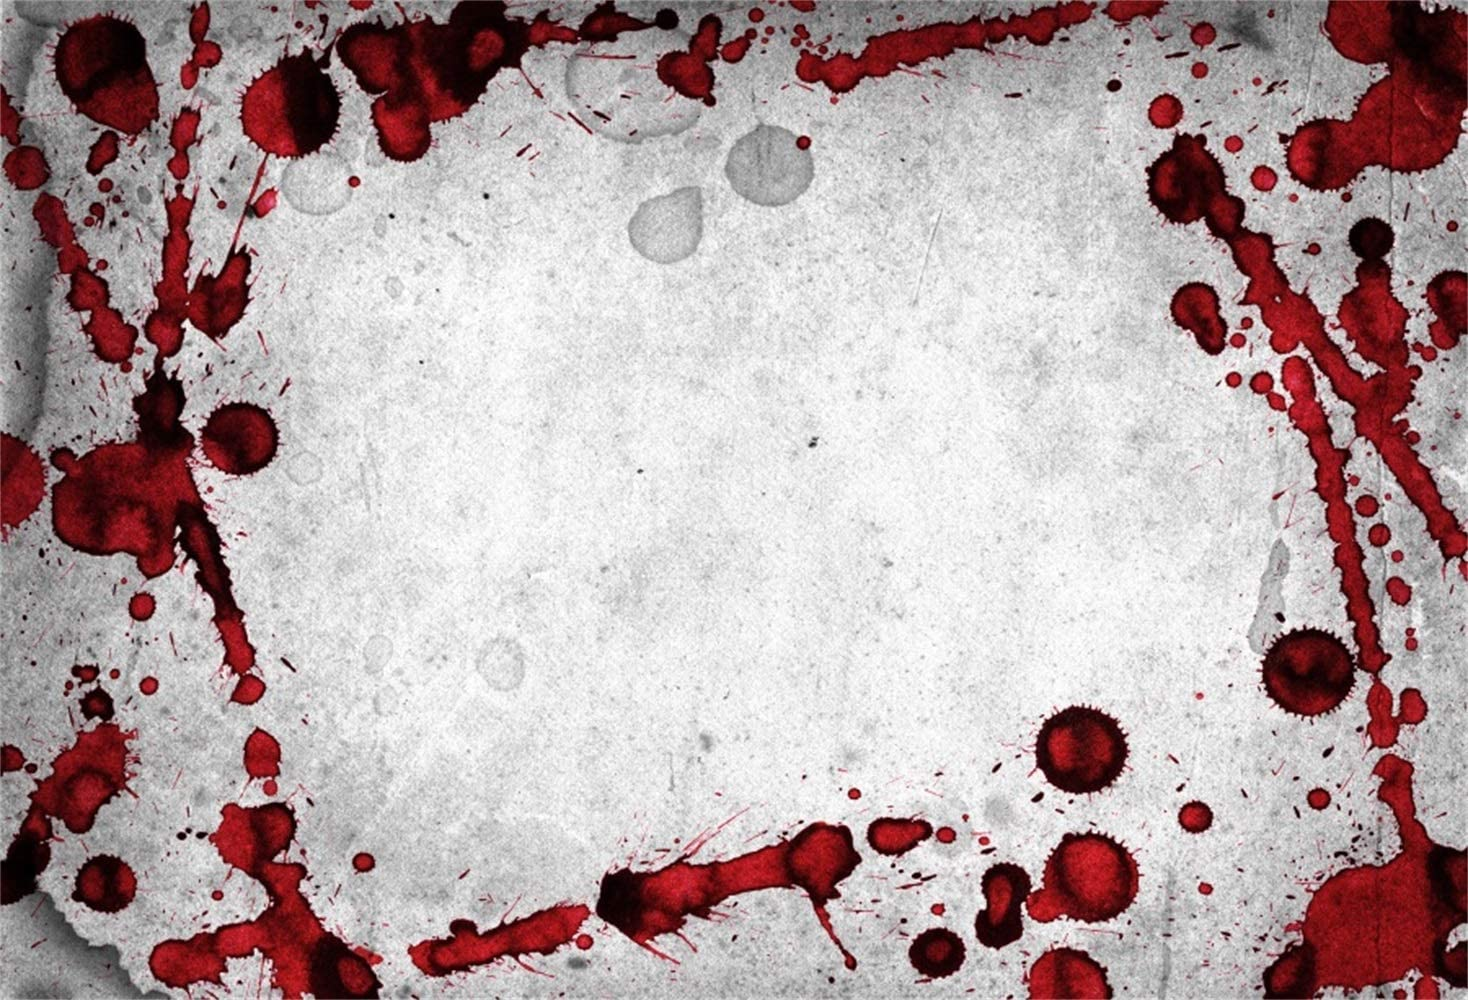 10x7ft Horror Night Halloween Backdrop Vinyl Creepy Blood Drips Splash Frame Faded Lime Wall Photography Backgroud Trick Or Treat Zombie Party Banner Child Baby Portrait Shoot